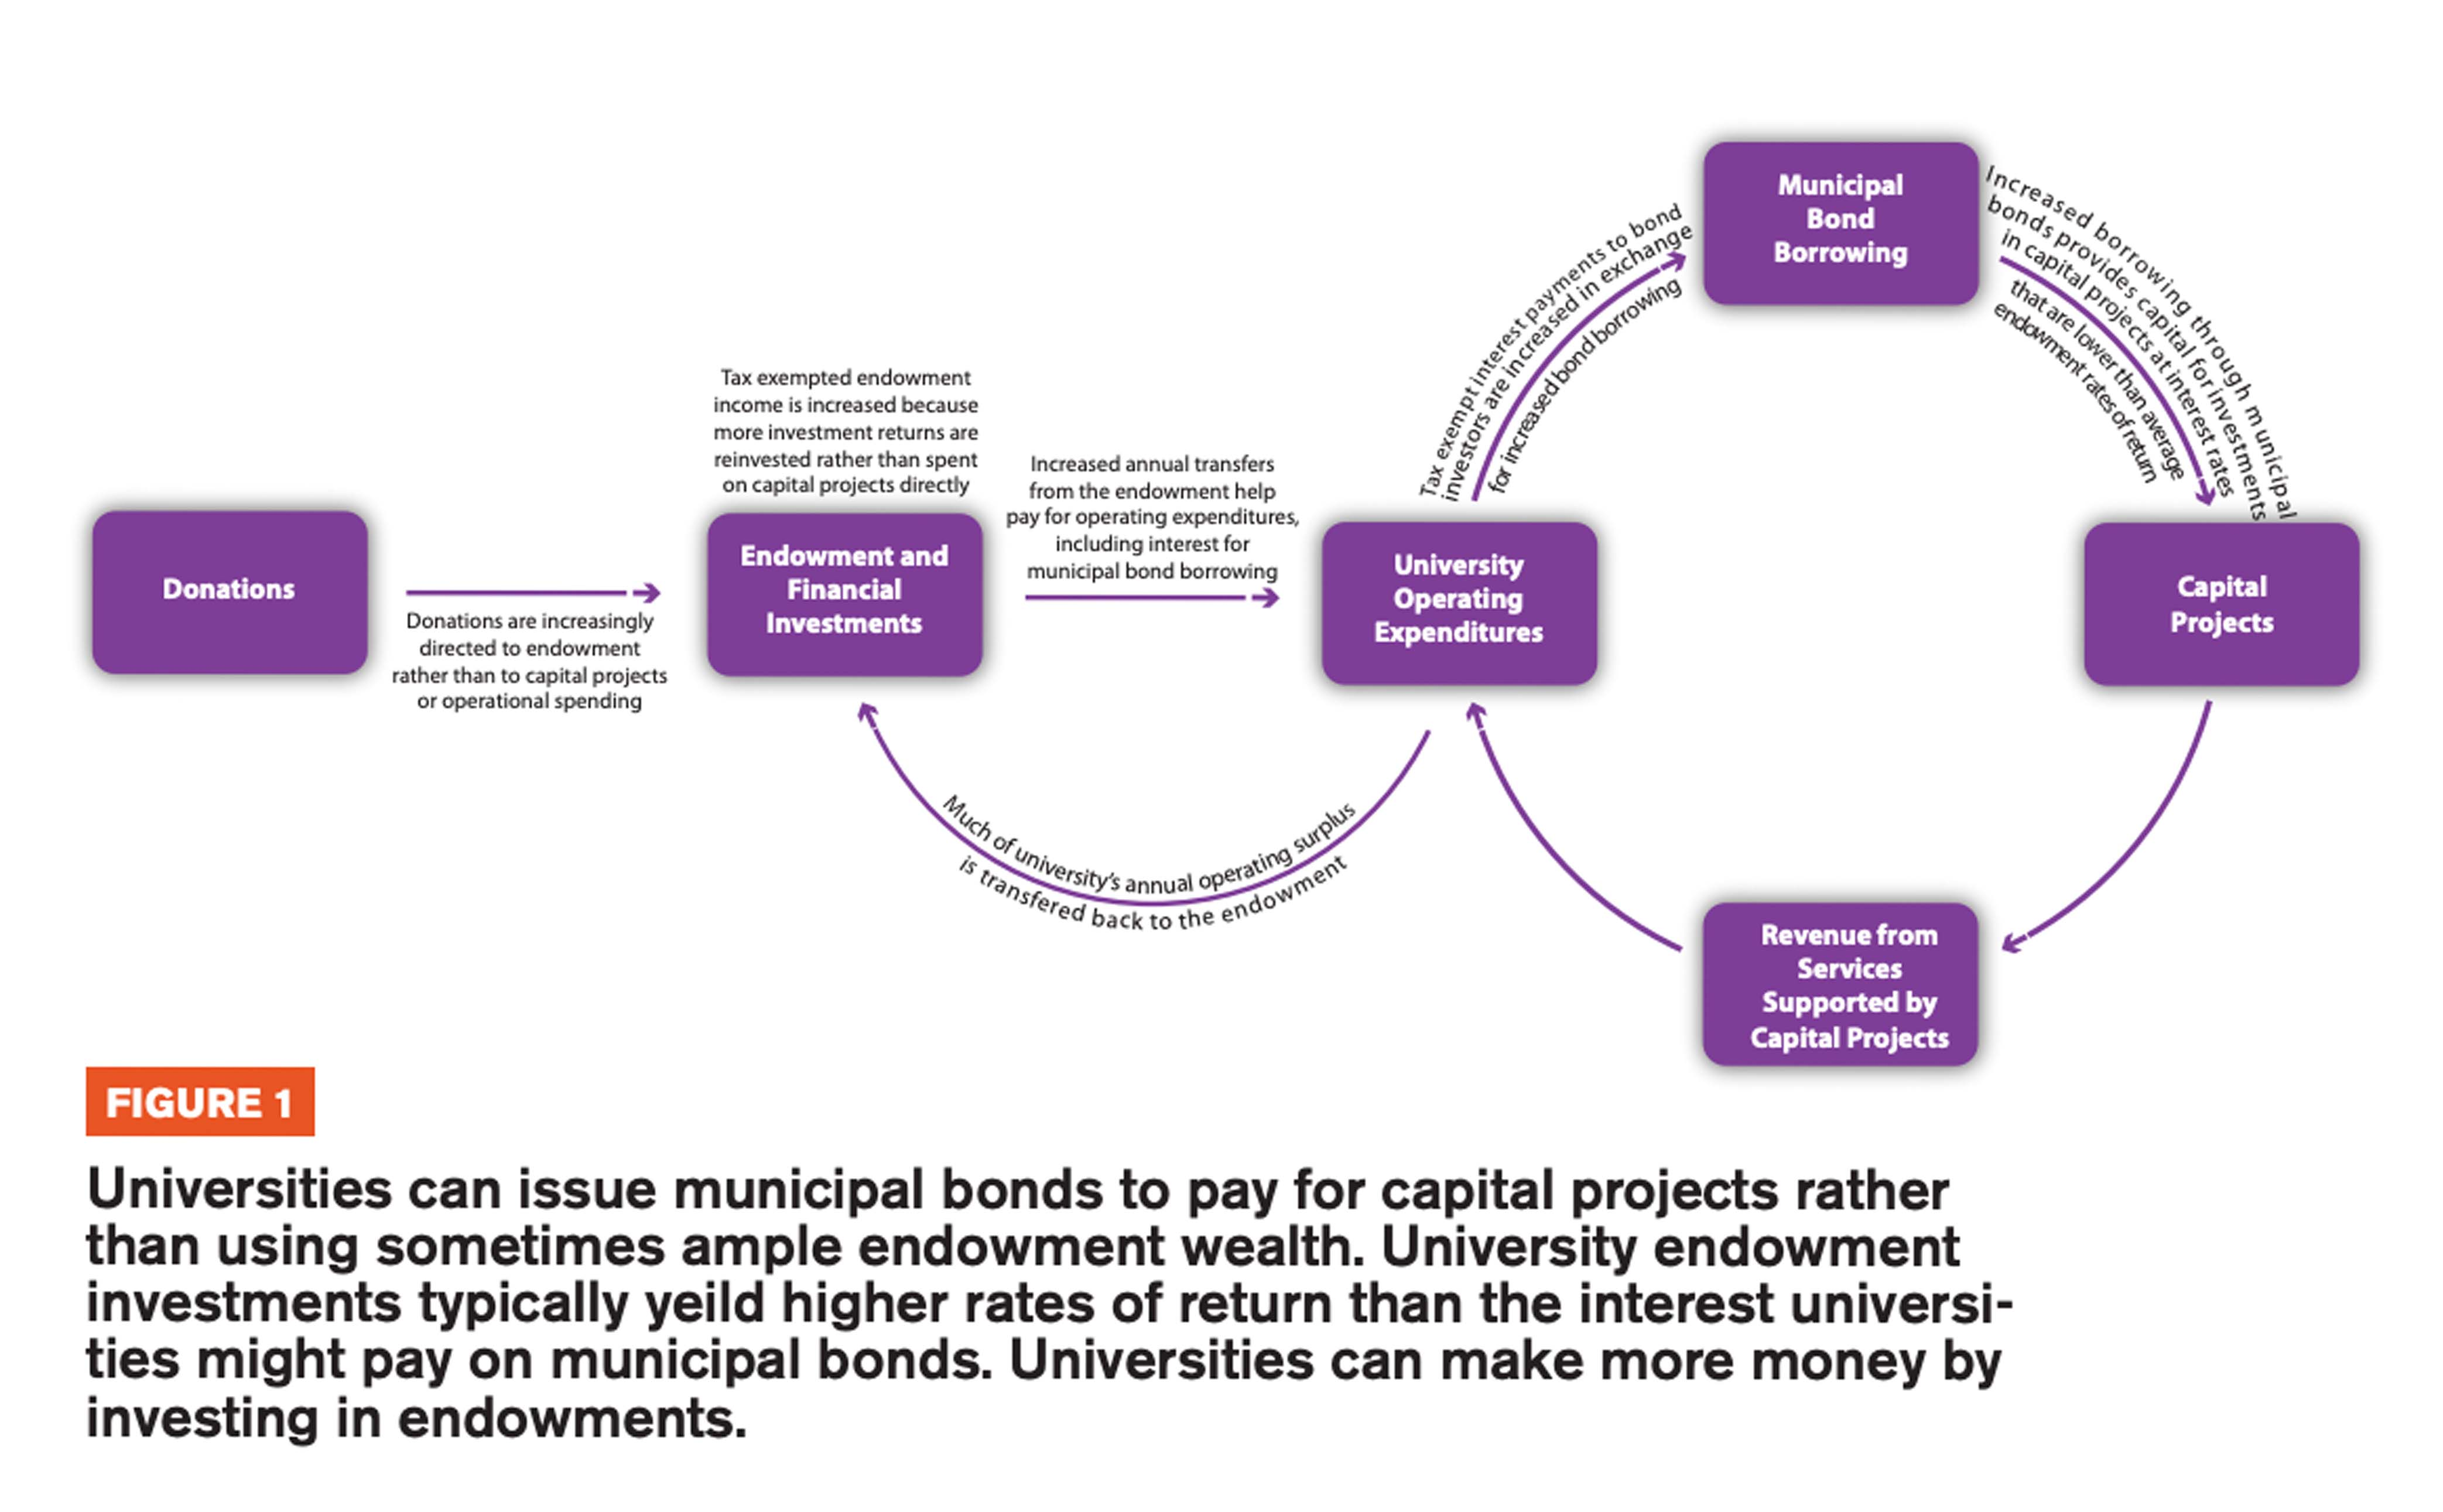 Figure 1 includes a diagram showcasing that Universities can issue municipal bonds to pay for capital projects rather than using sometimes ample endowment wealth. University endowment investments typically yeild higher rates of return than the interest un